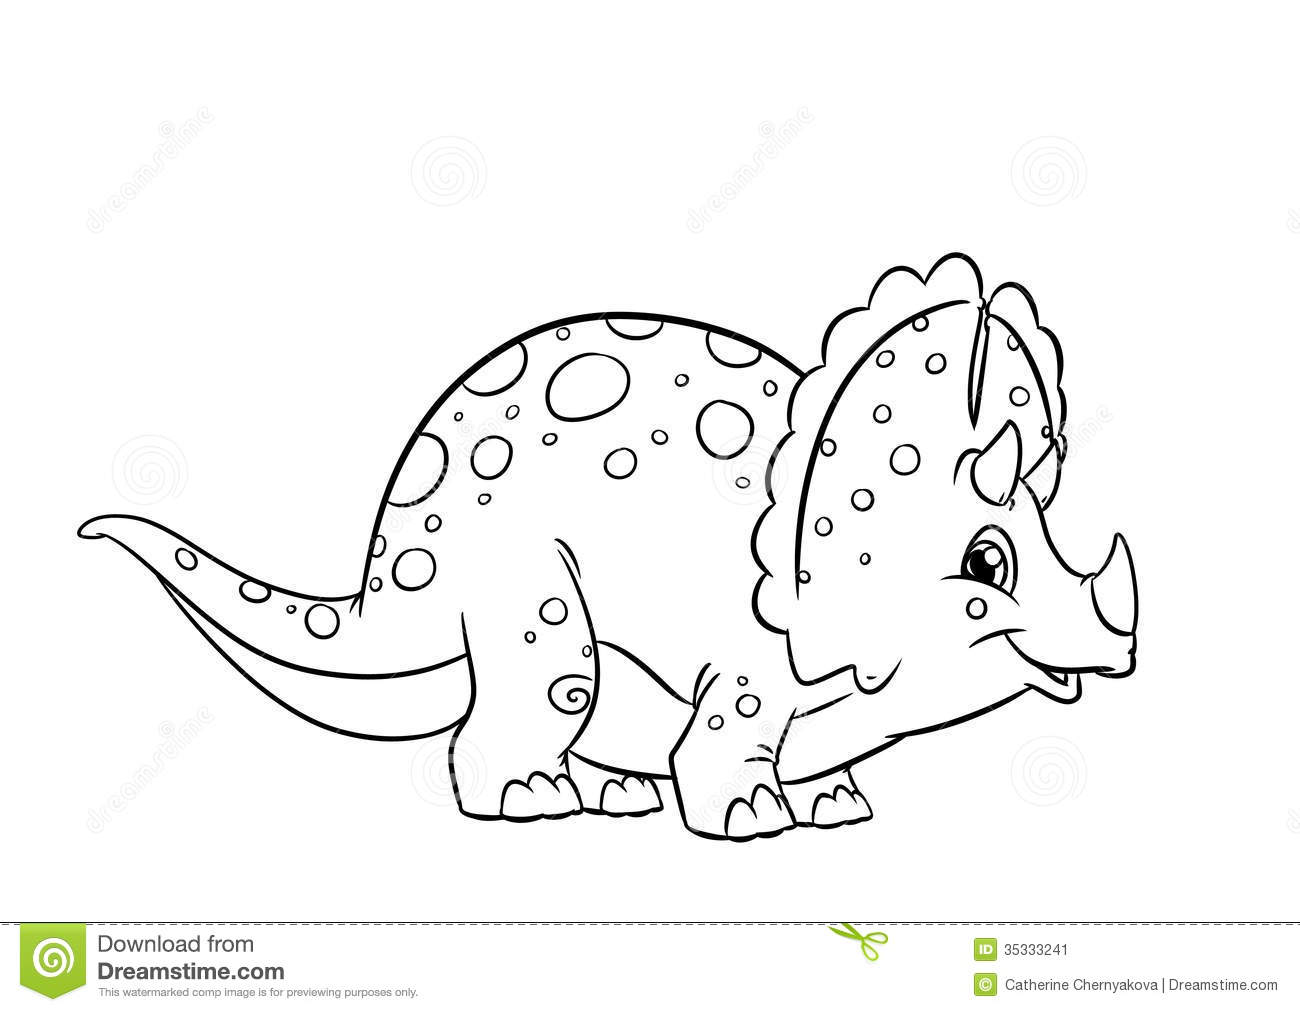 triceratops coloring pages Dinosaur Triceratops Coloring Pages Stock Illustration  triceratops coloring pages